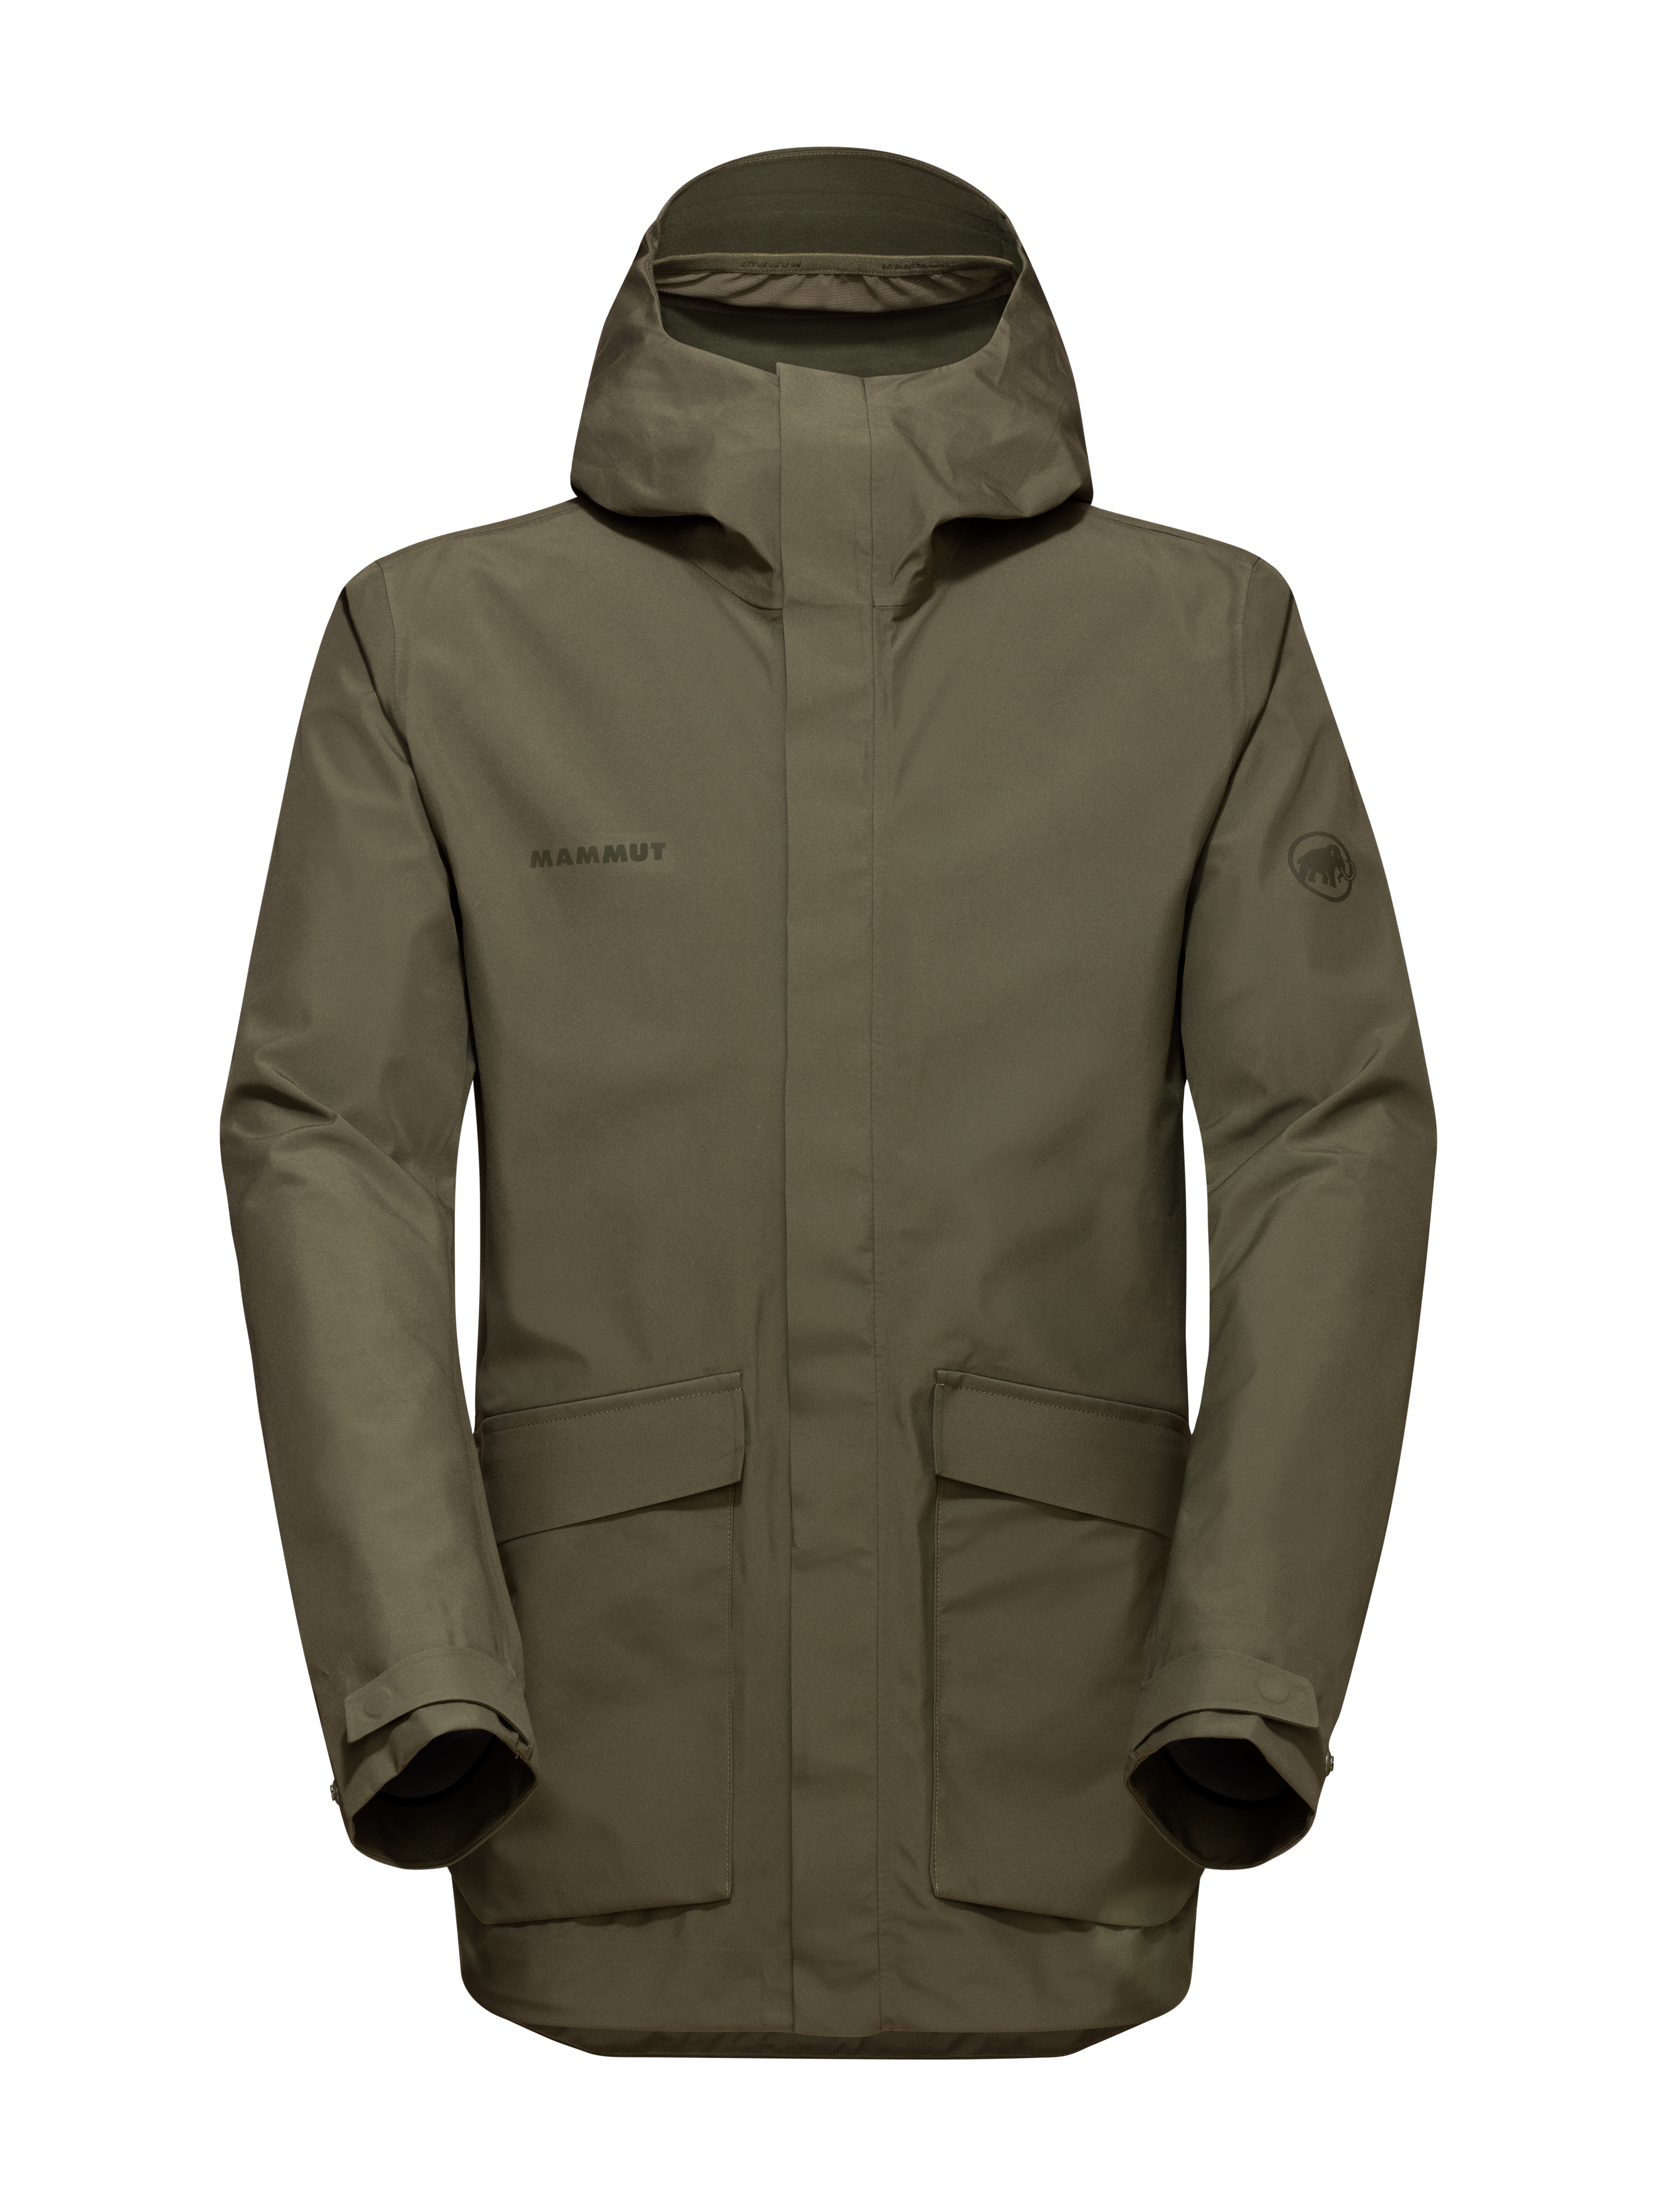 Mammut 3L HS Hooded Jacket Men product image